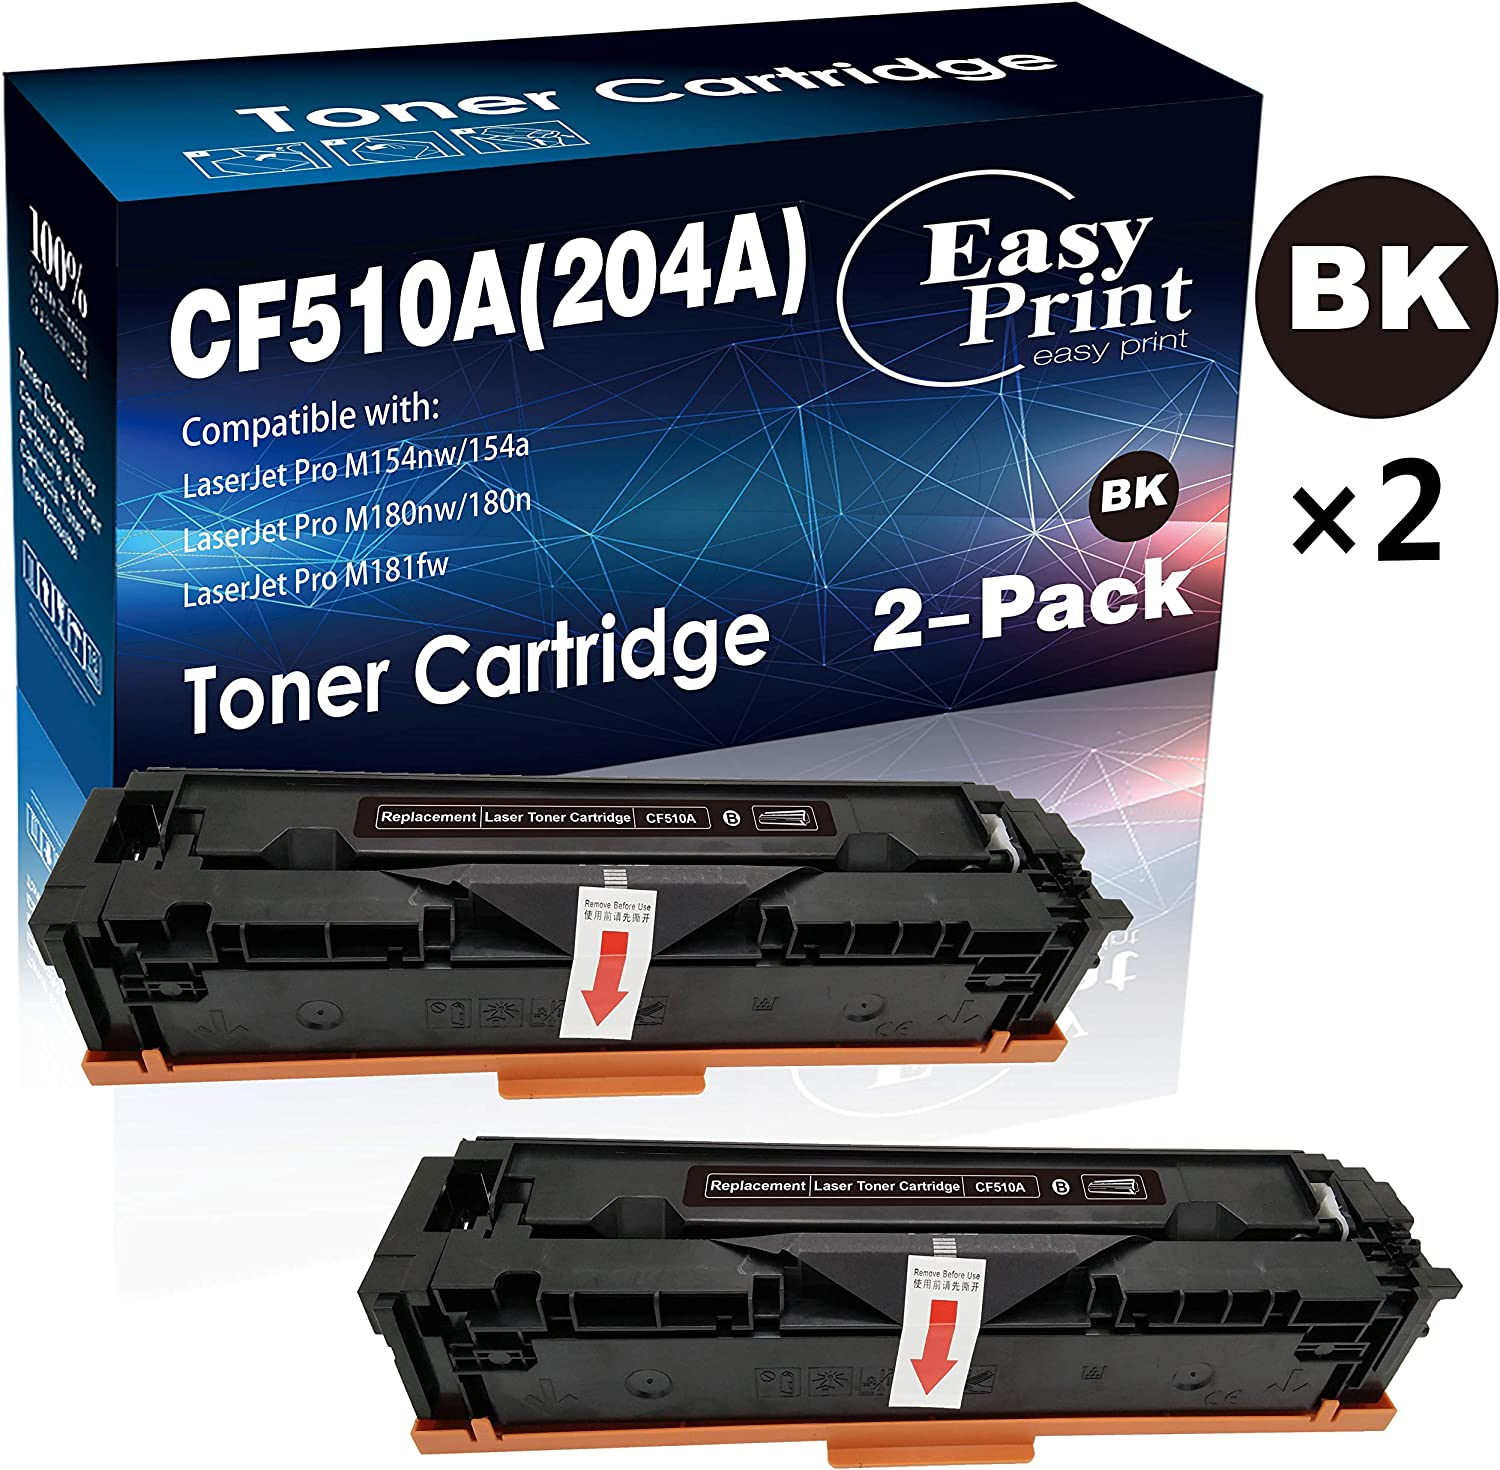 Compatible 2-Pack 204A CF510A Toner Cartridge for HP Laserjet Pro M154nw M154a M180nw M180n M181fw Printer (Black), by EasyPrint